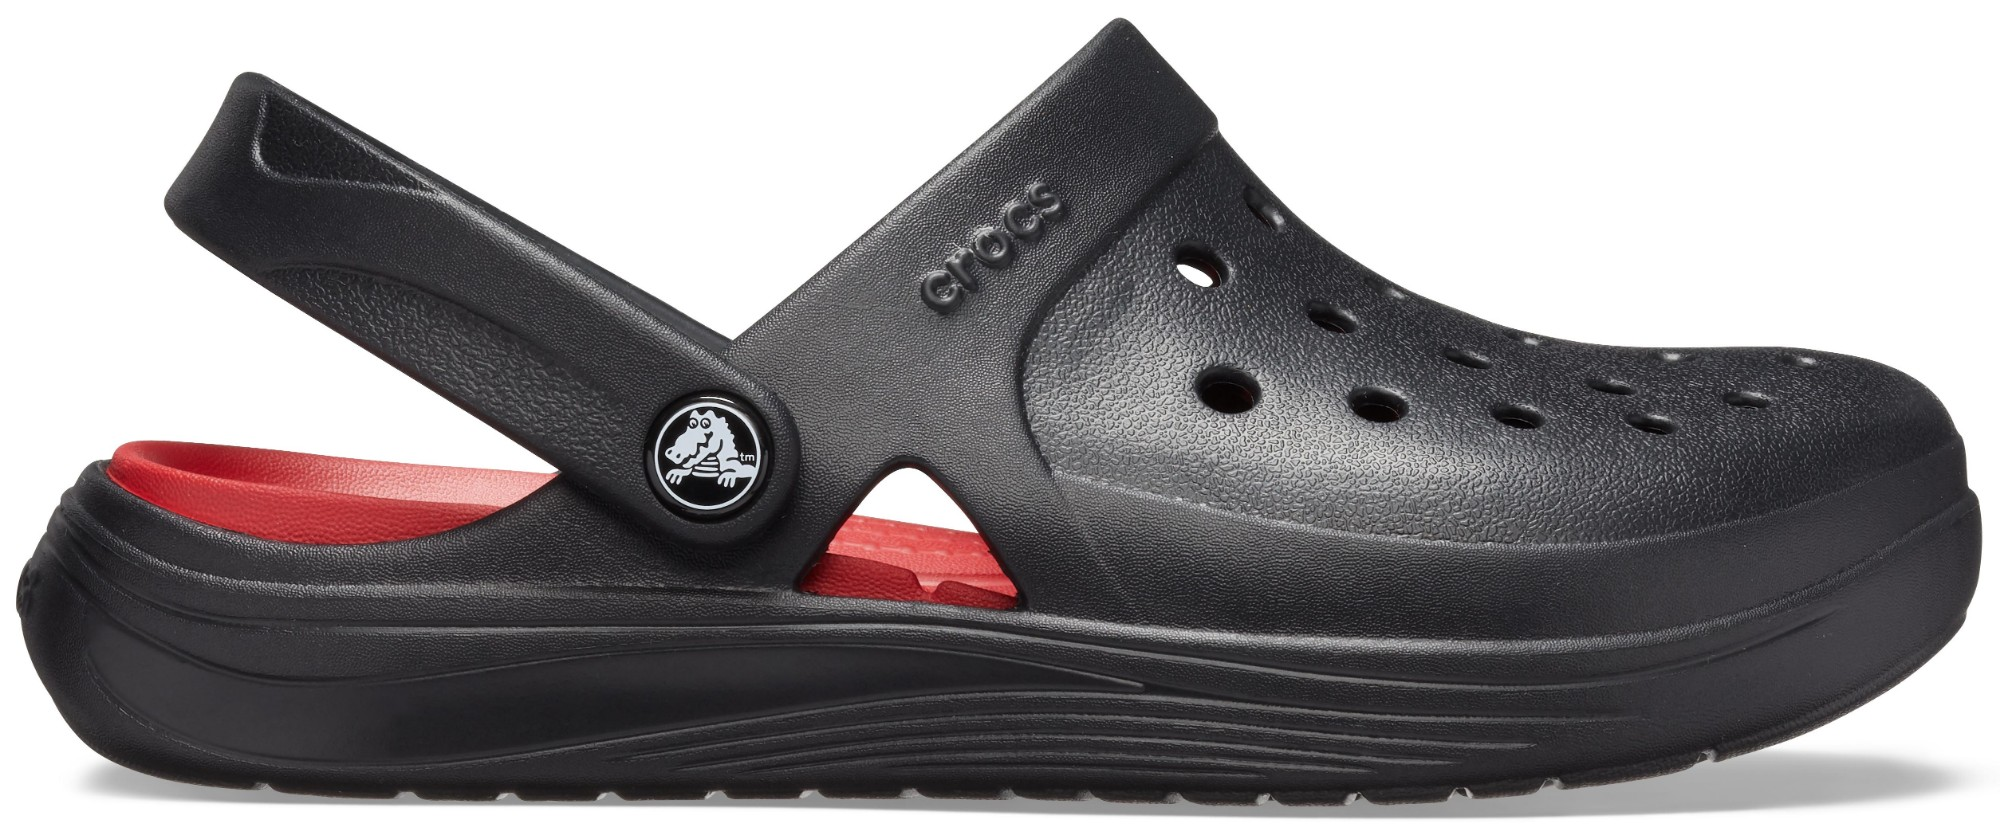 Crocs™ Reviva Clog Black/Pepper 41